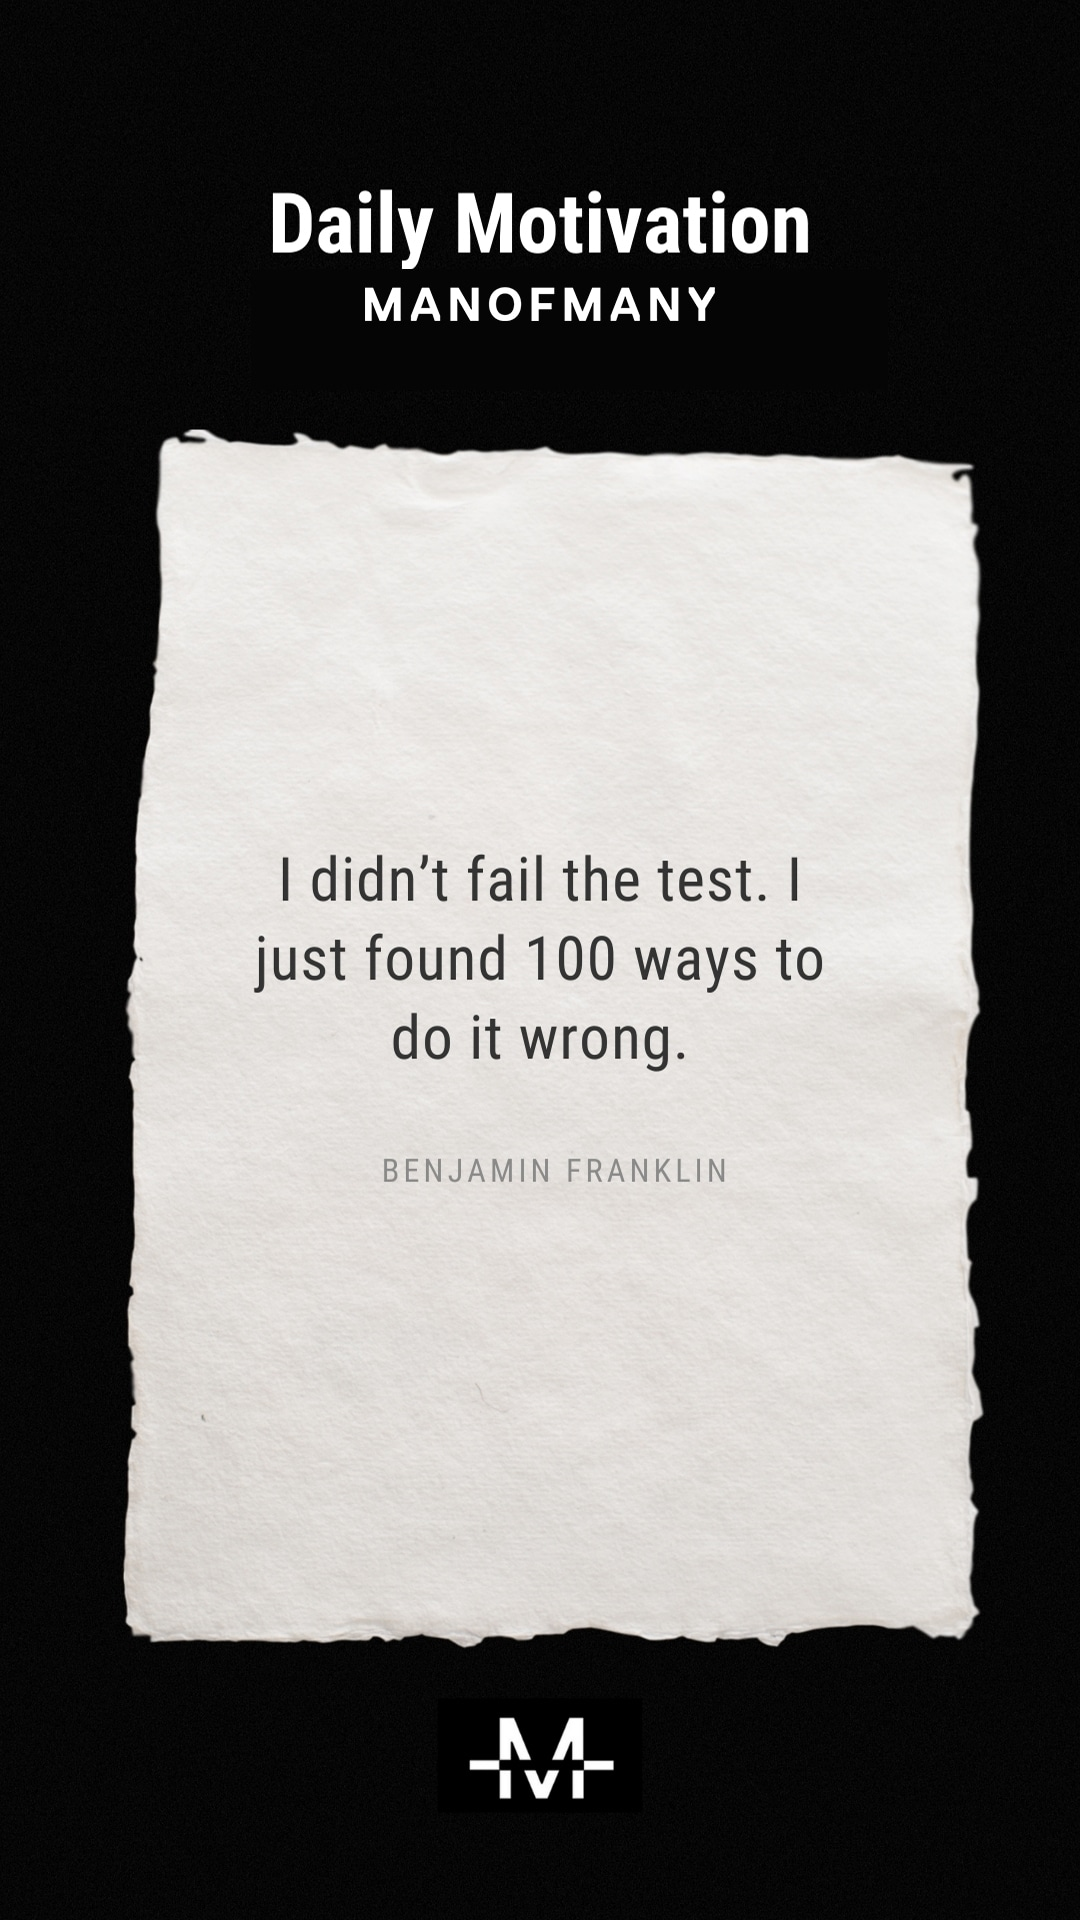 I didn't fail the test. I just found 100 ways to do it wrong. –Benjamin Franklin quote